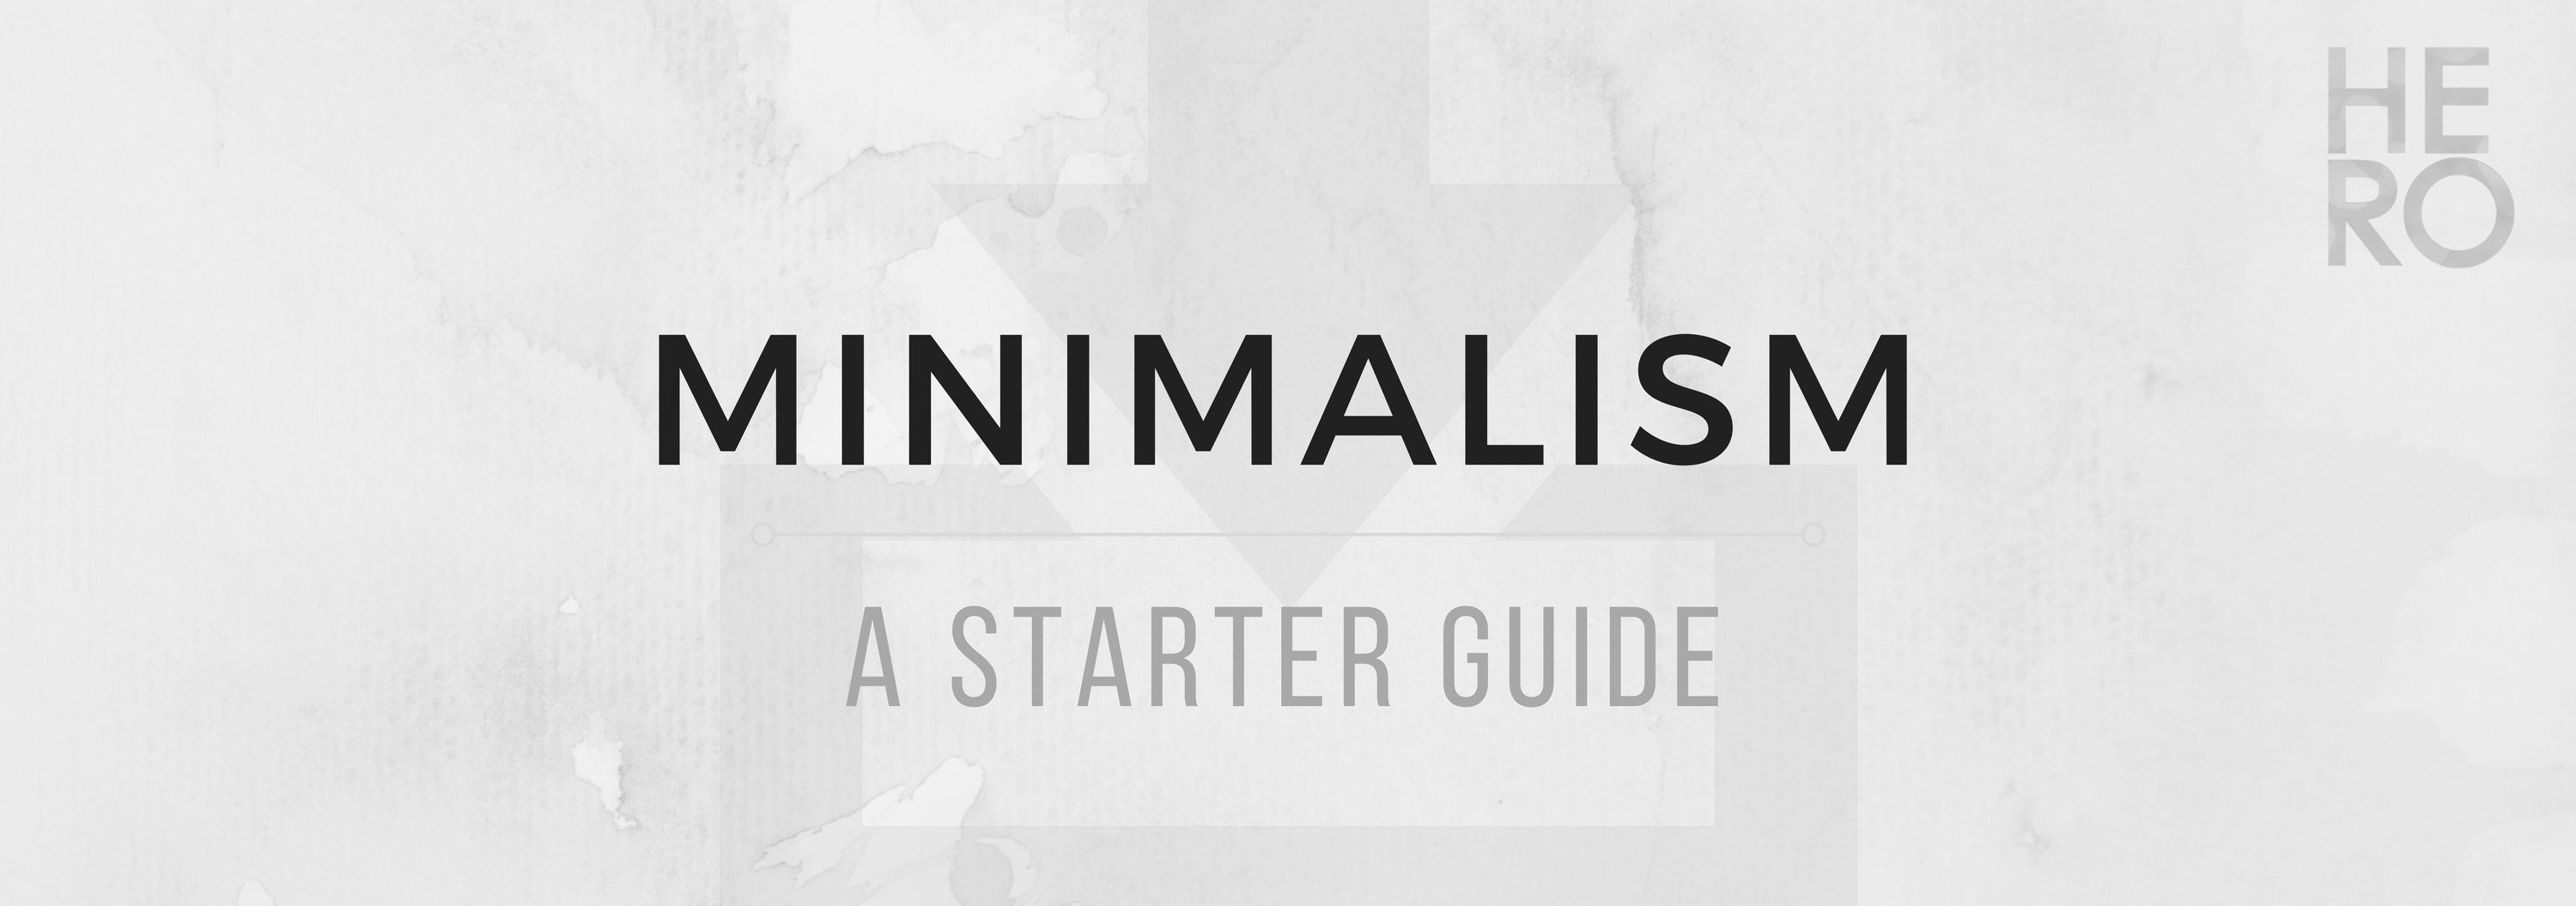 Minimalism: A Starter Guide